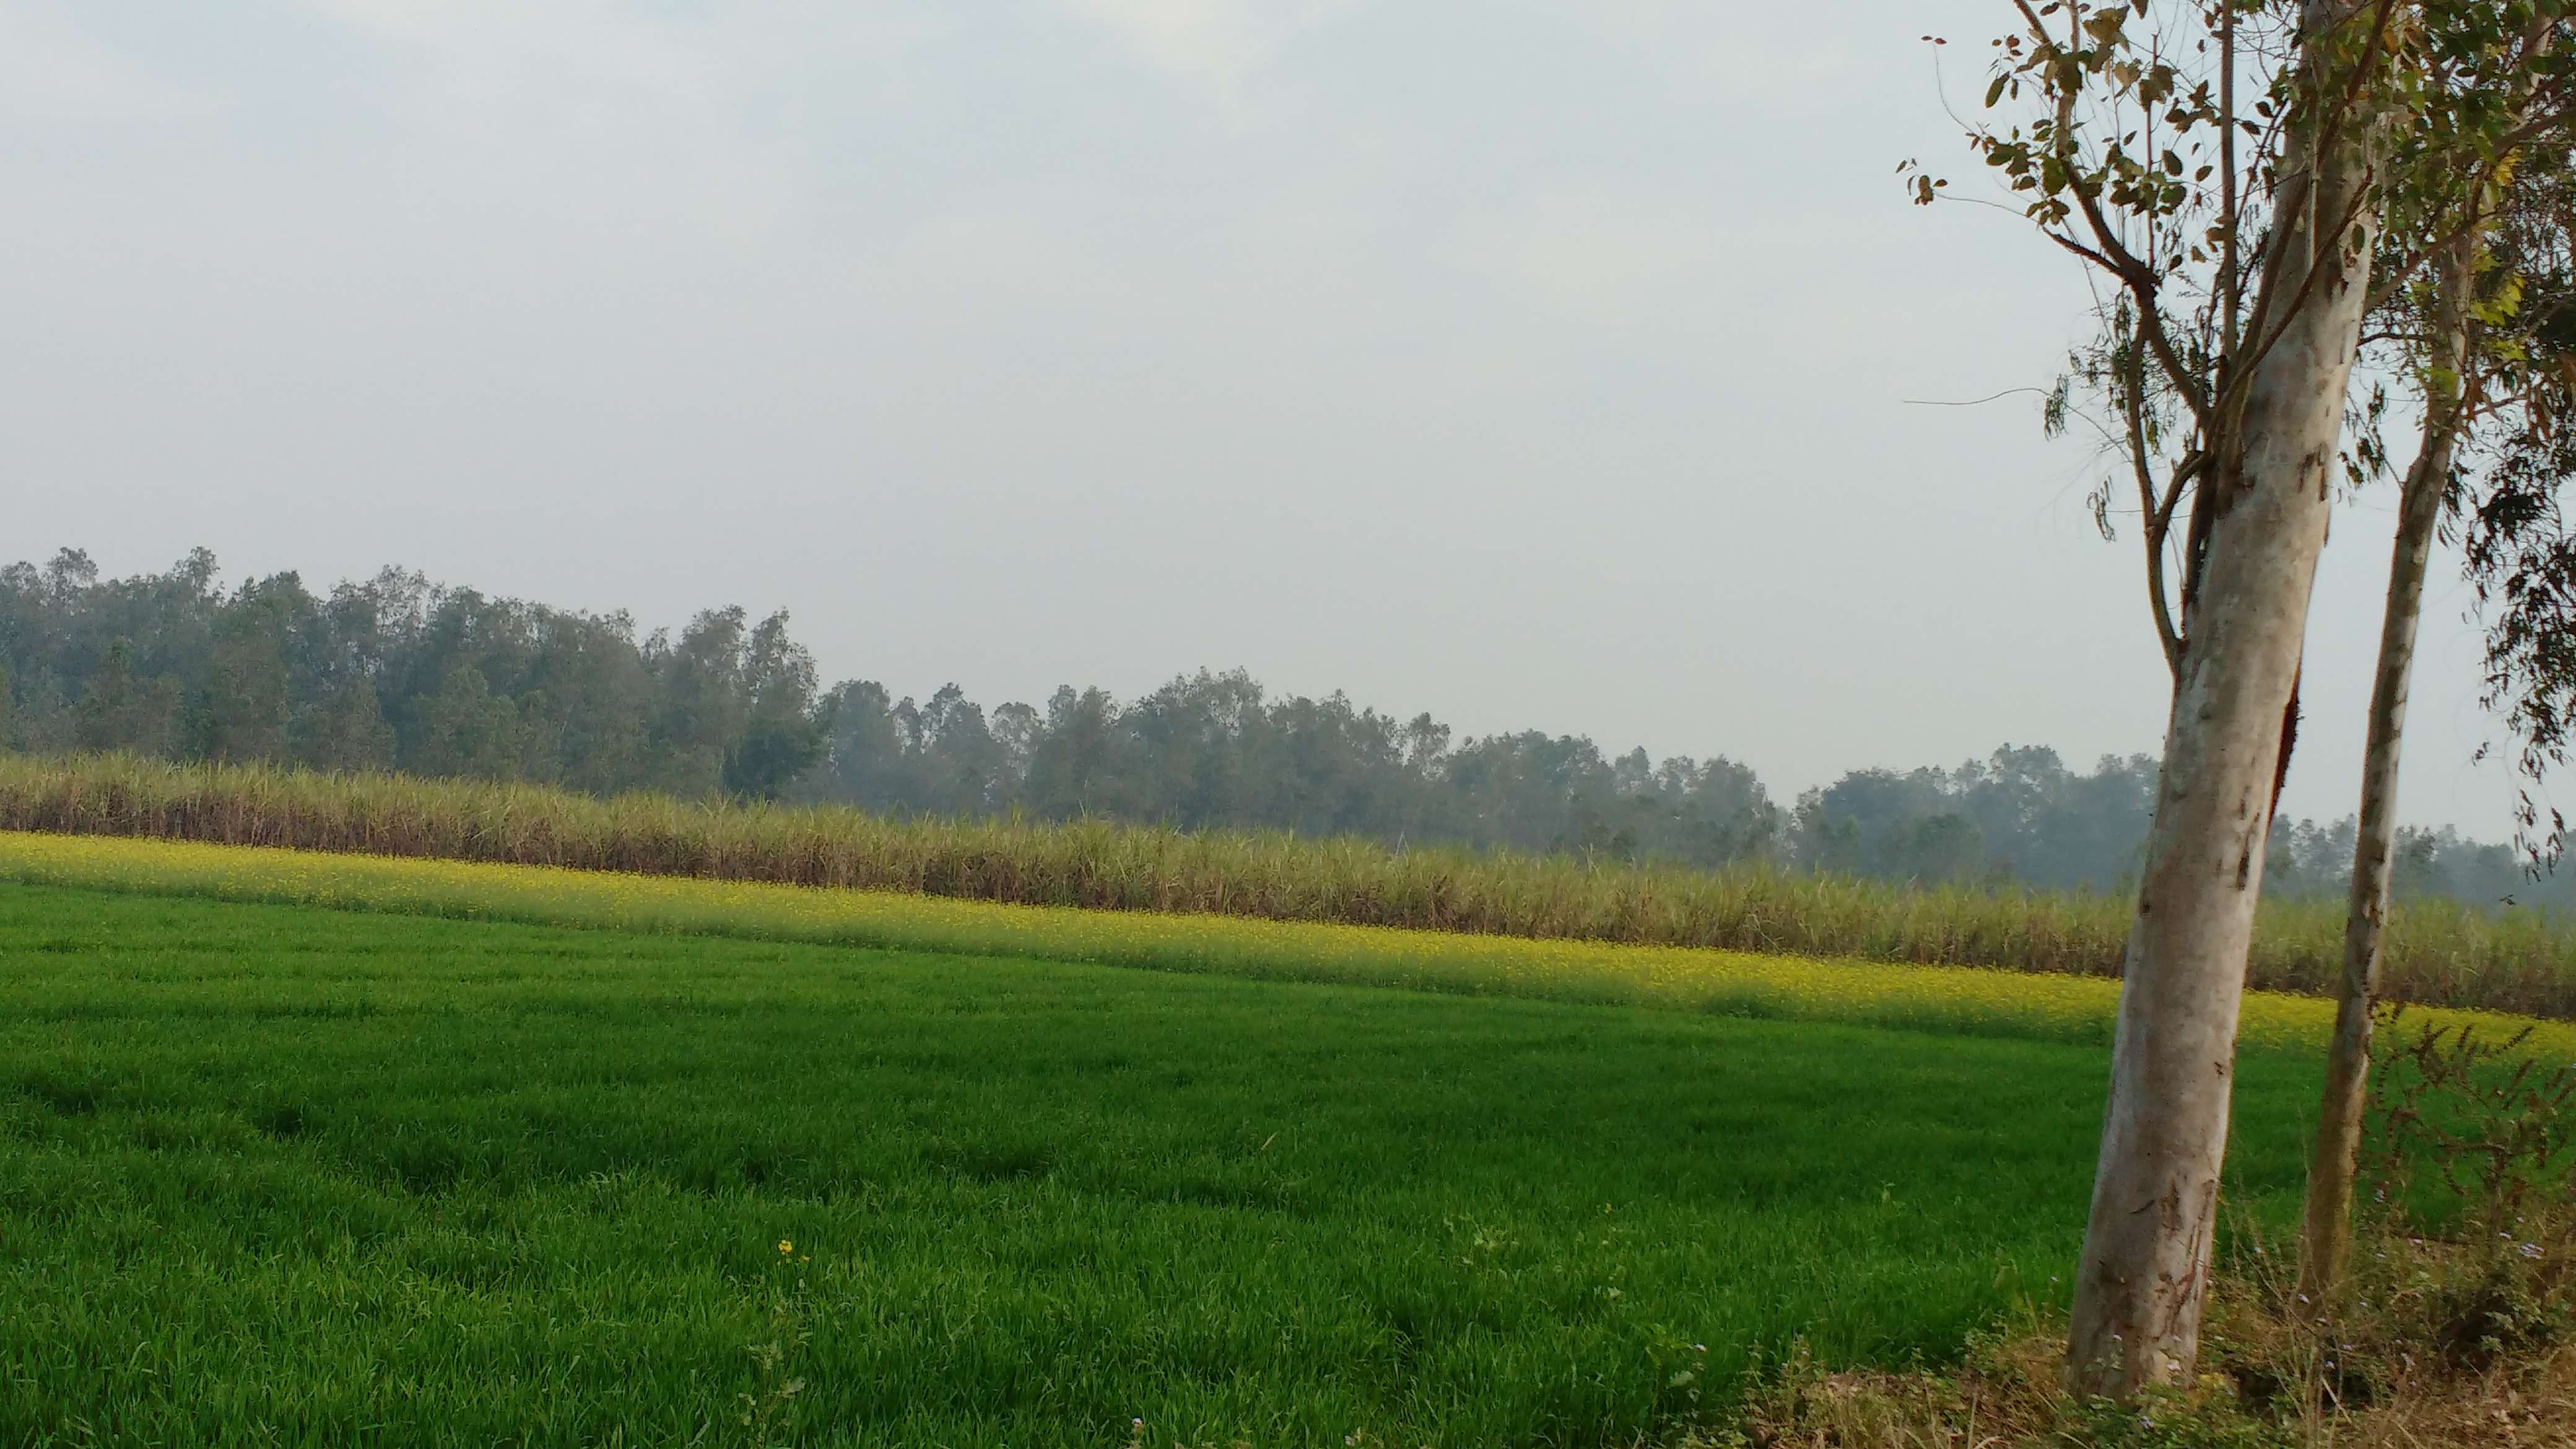 Fields with wheat, mustard and sugarcane crops in Bareilly. Credit: Rajan Pandey